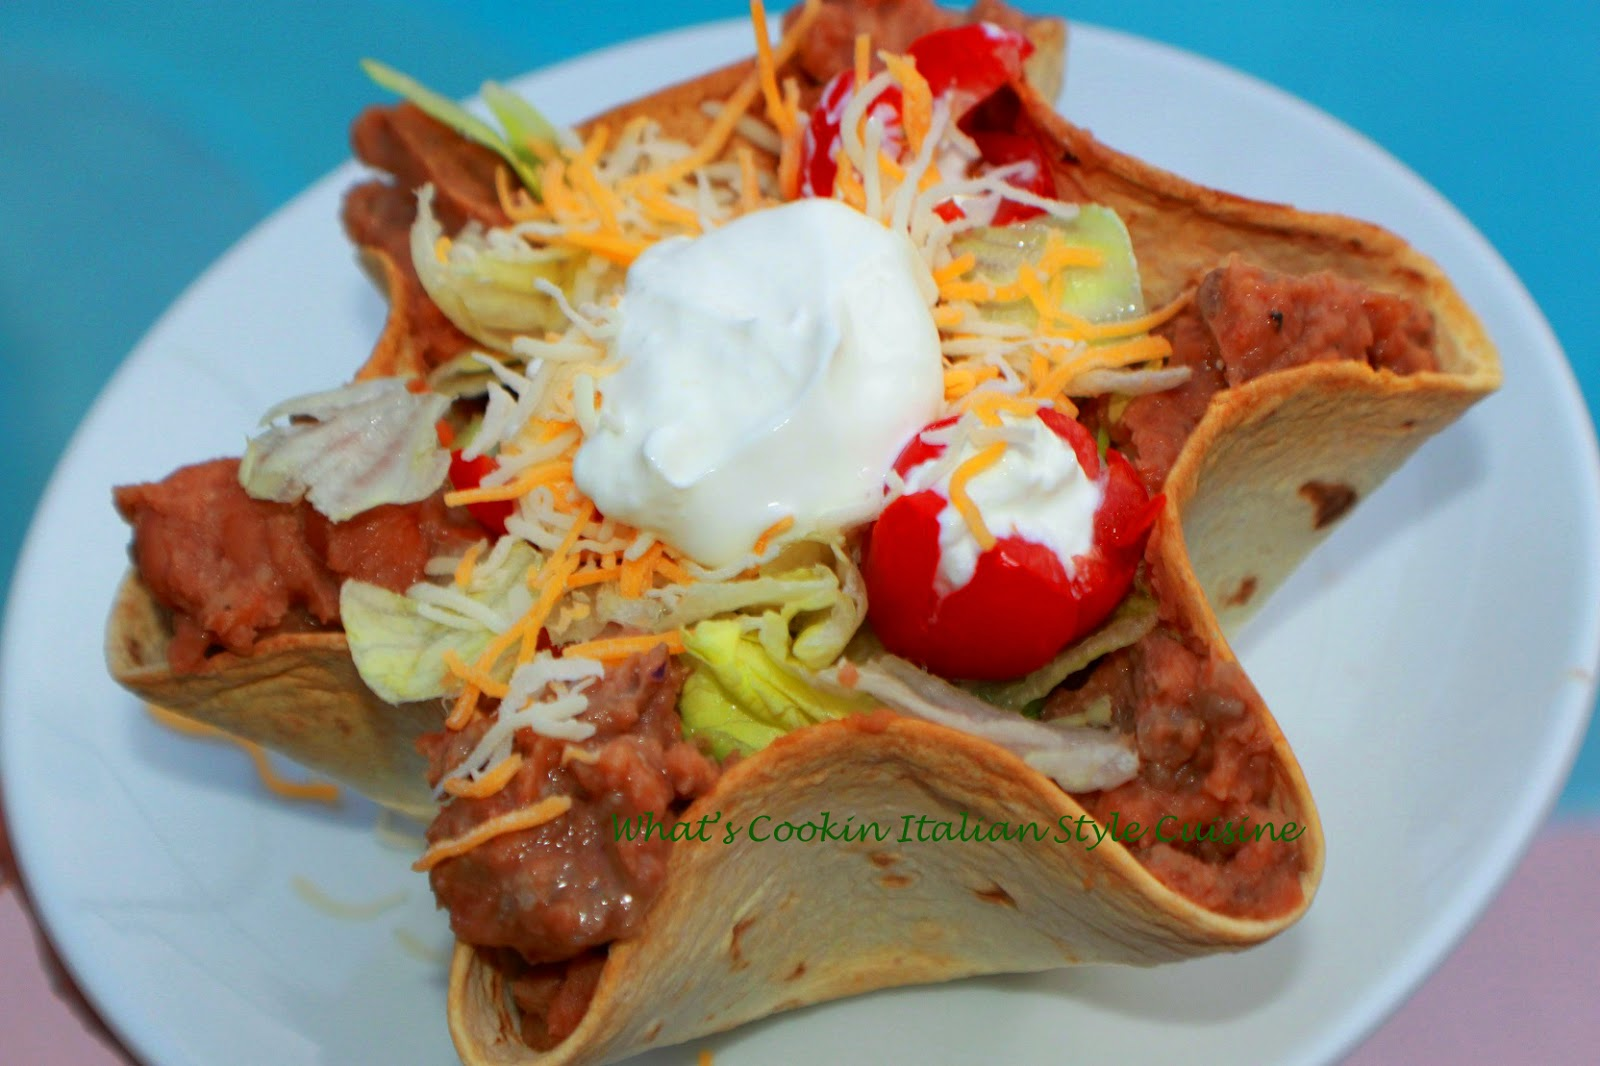 these are homemade taco shells filled with a salad with refried beans, salad, cheese, lettuce and tomato